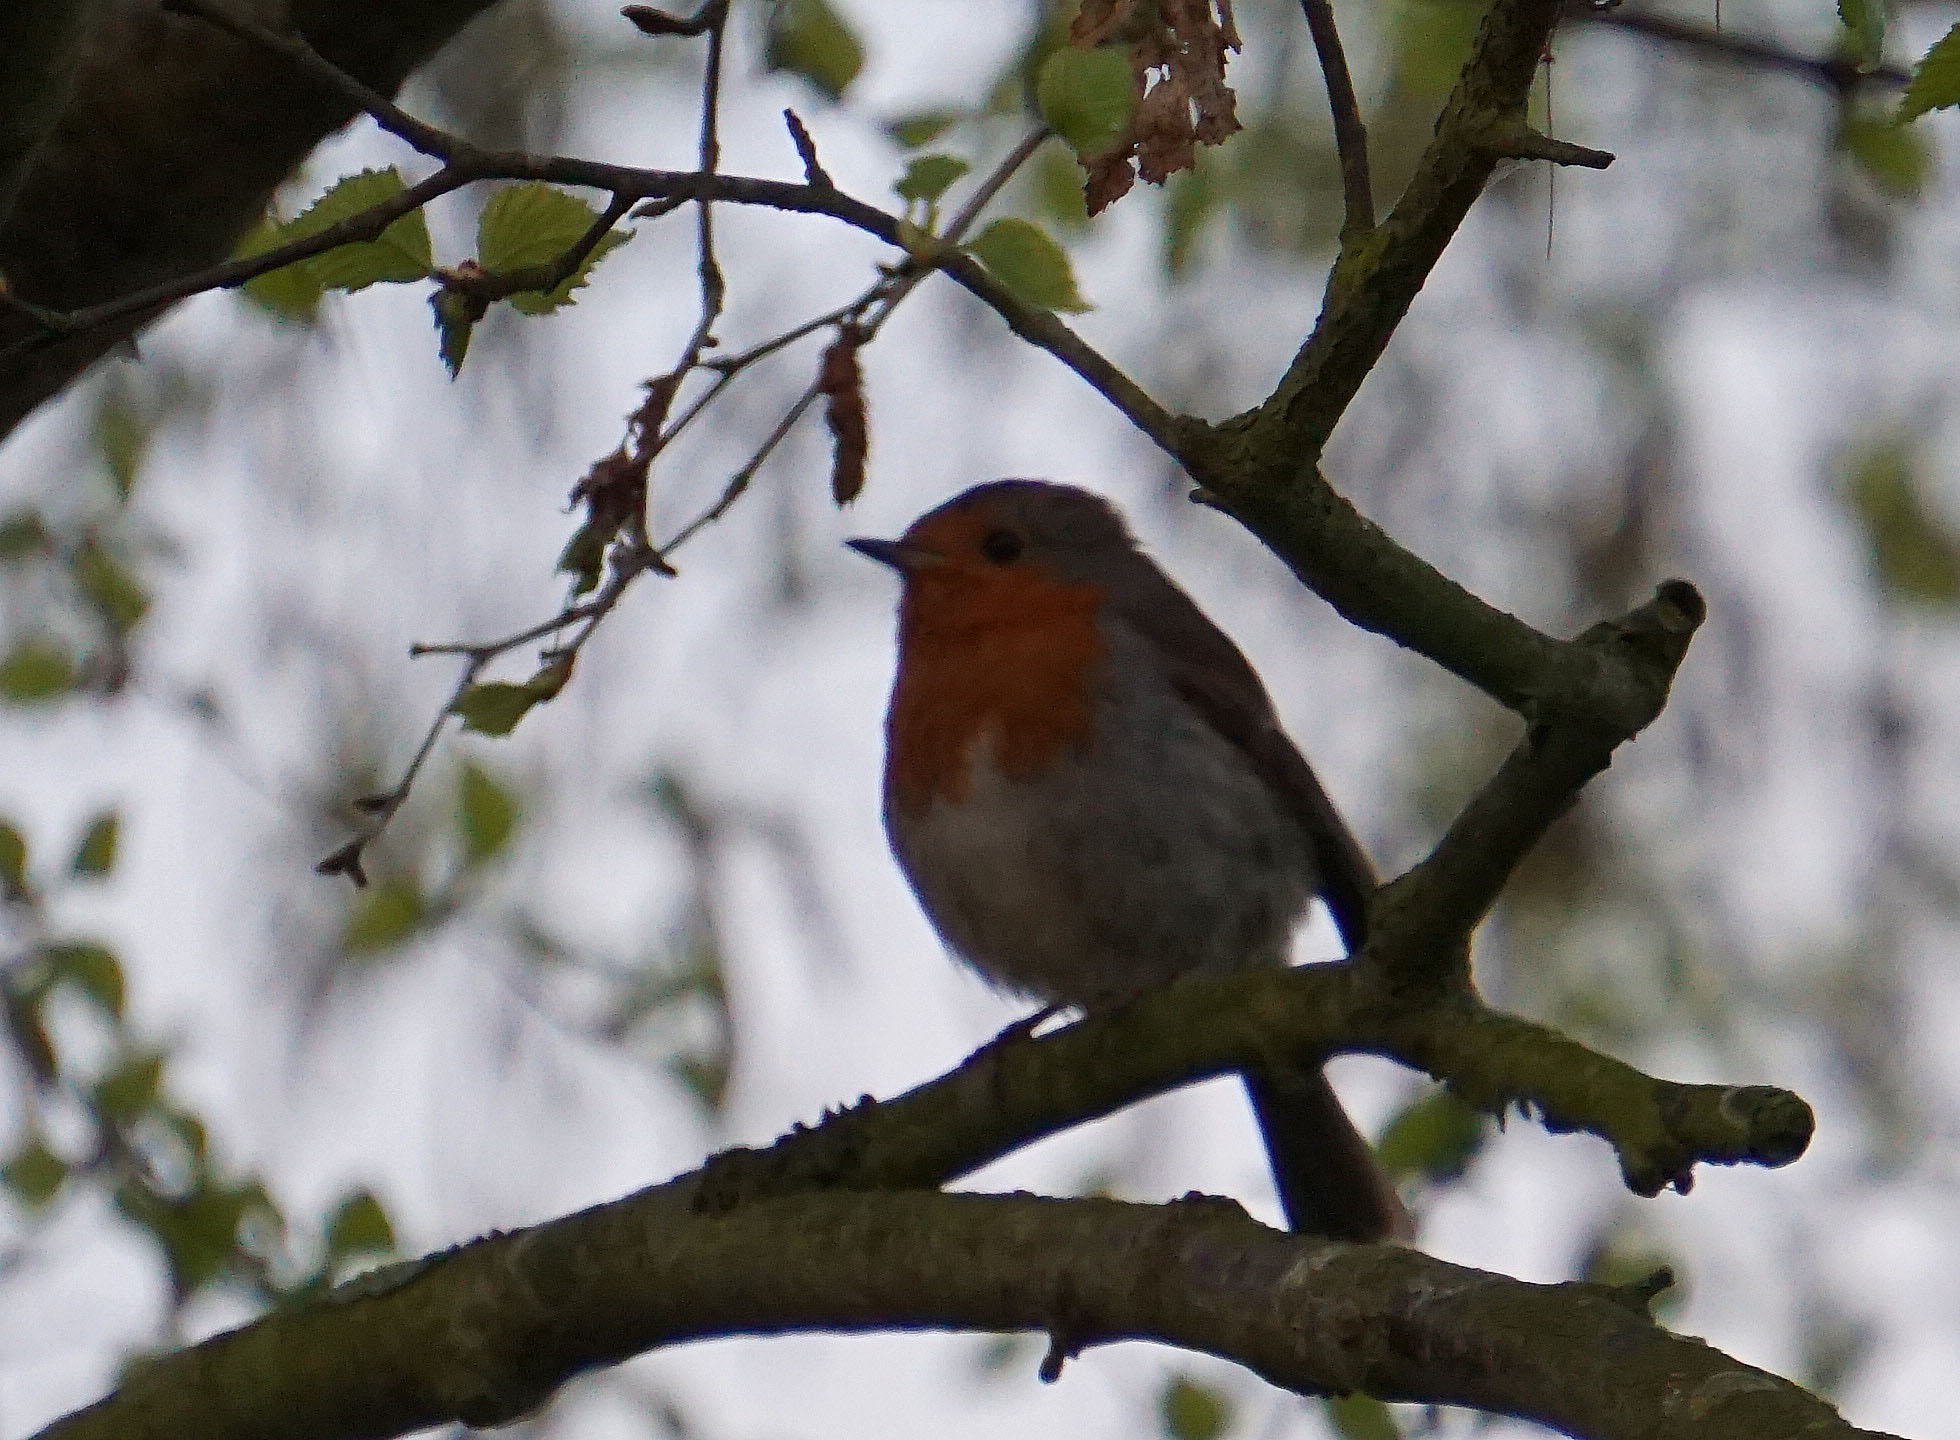 A robin singing in the tree - maybe the parent of the fledgling